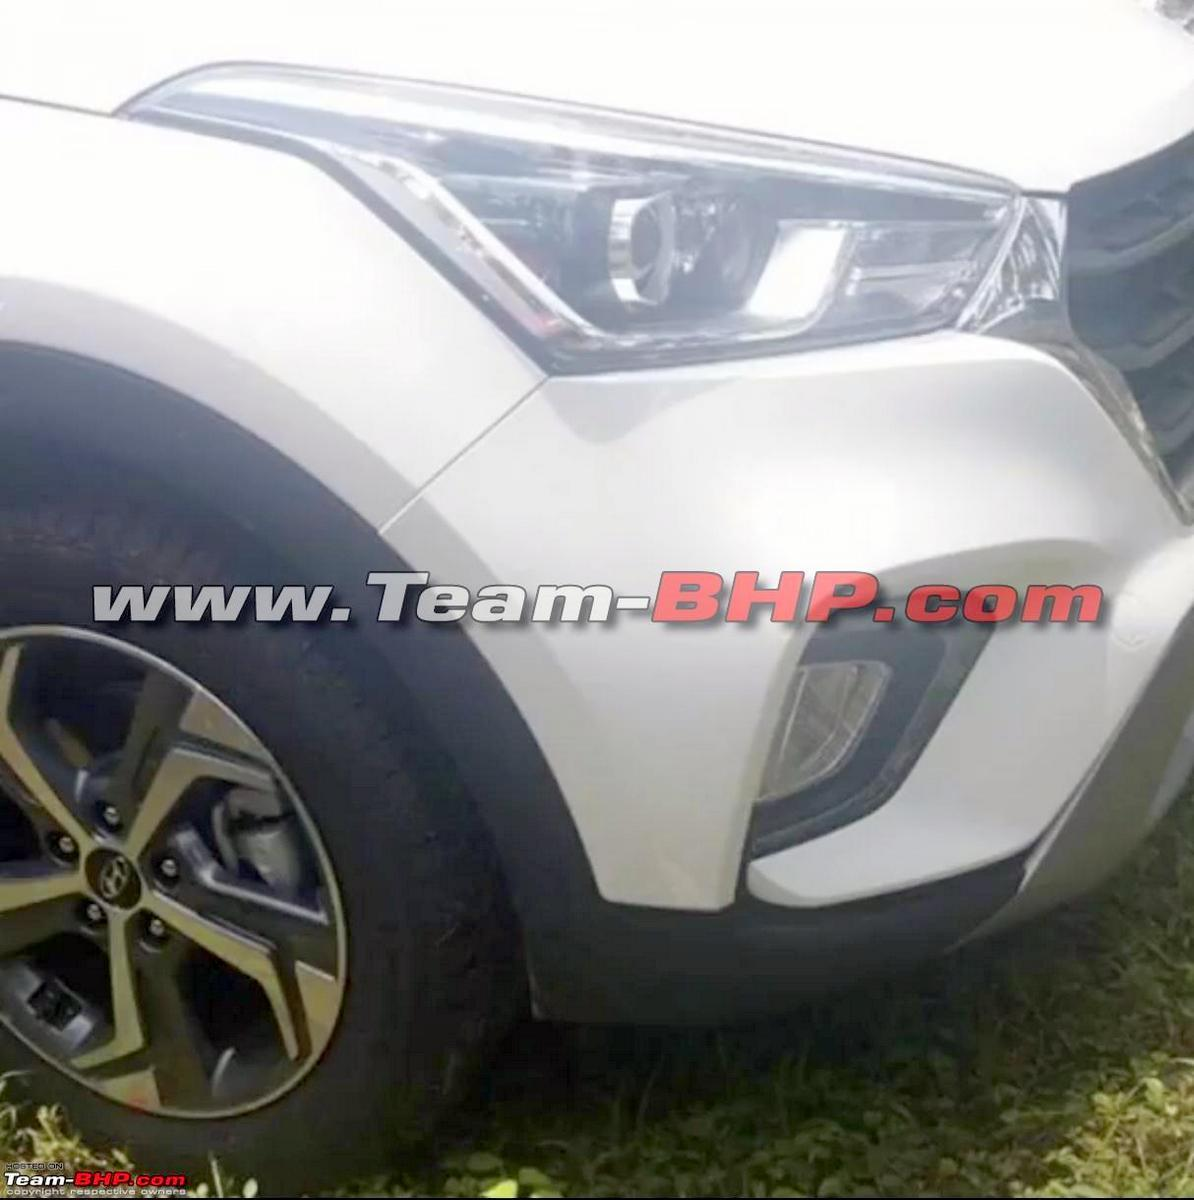 New Hyundai Creta Facelift Front And Rear Spied Undisguised